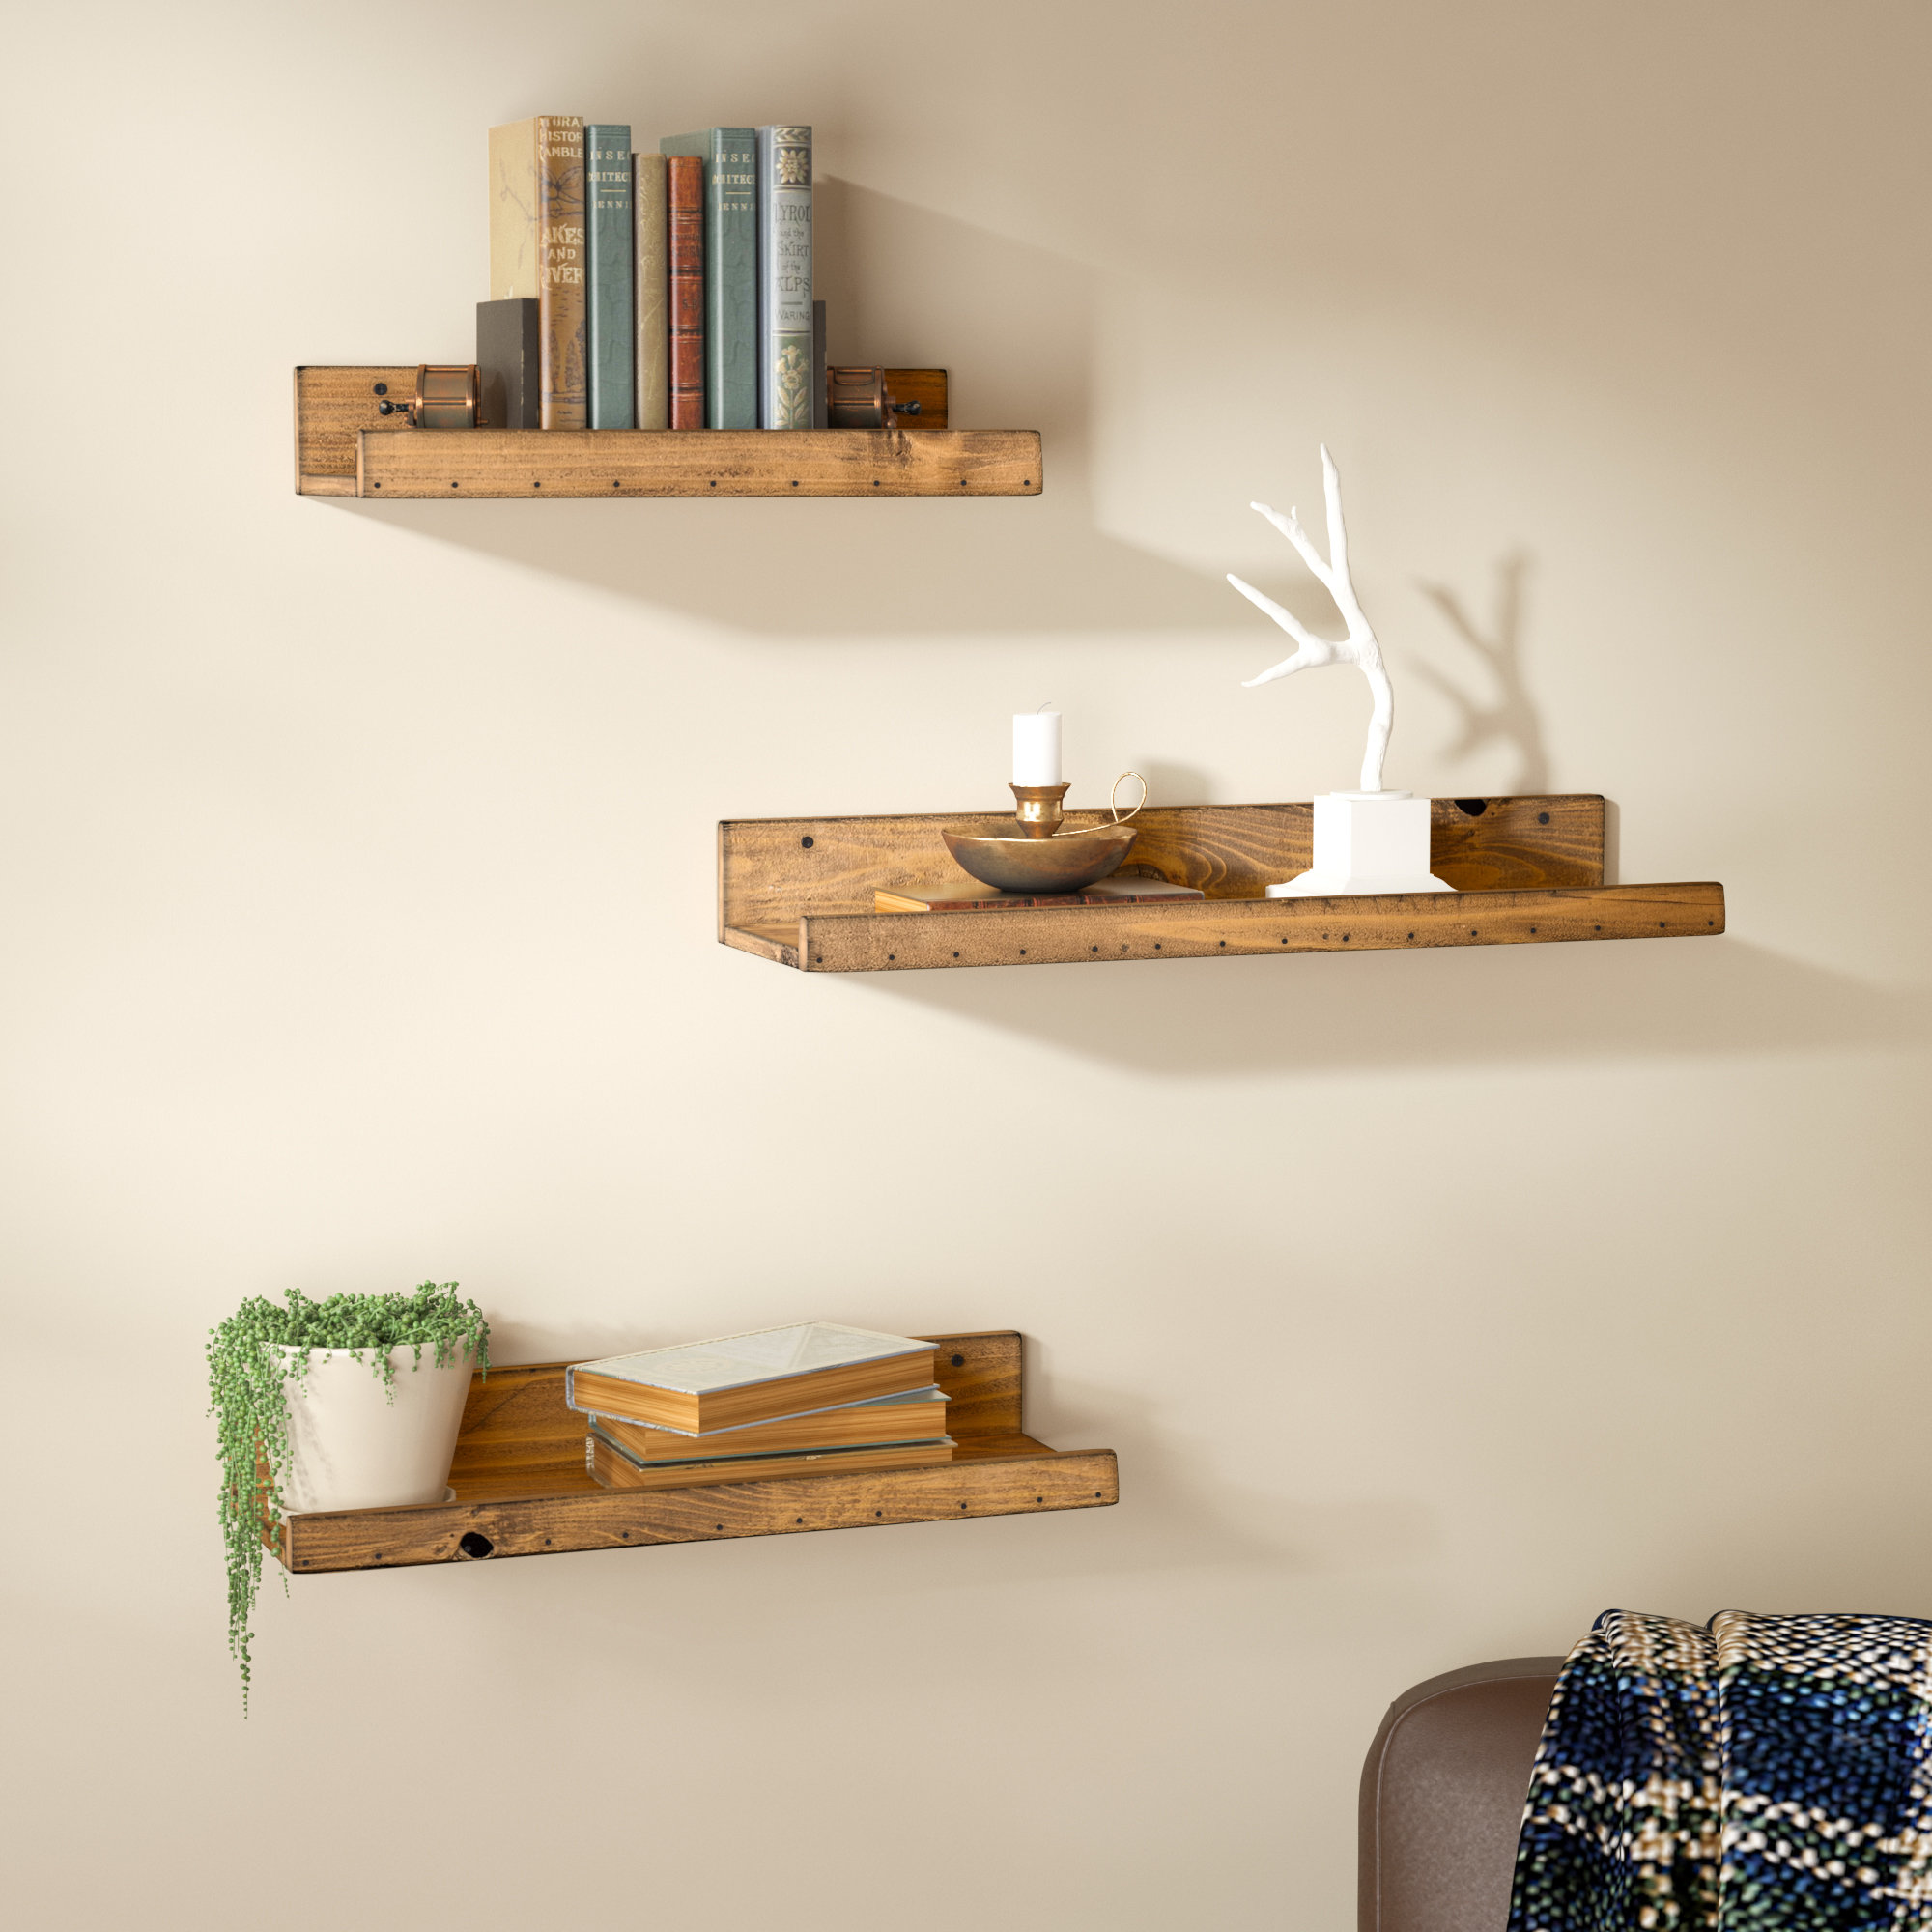 union rustic dunlap piece floating shelf set reviews extra large shelves bedroom clothes storage standard closet size metal corner plant stand display unit cable box bracket flat